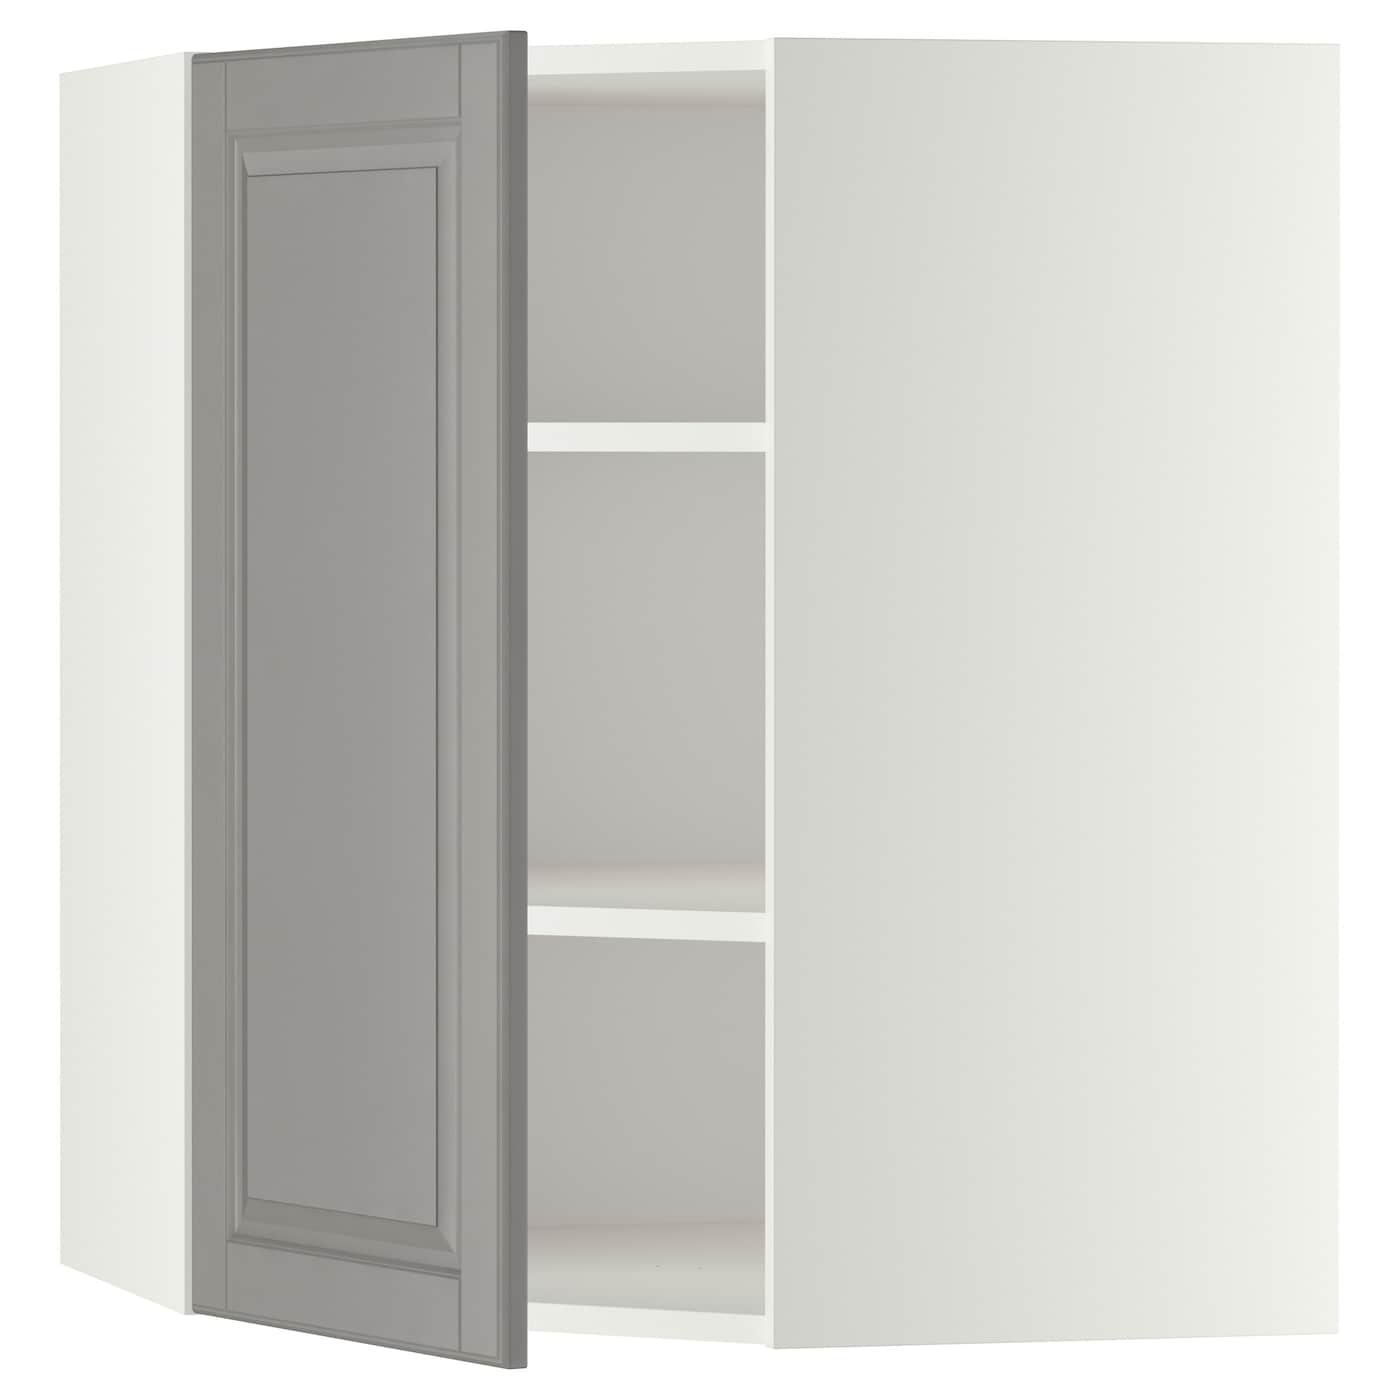 Metod corner wall cabinet with shelves white bodbyn grey for Corner cabinets ikea